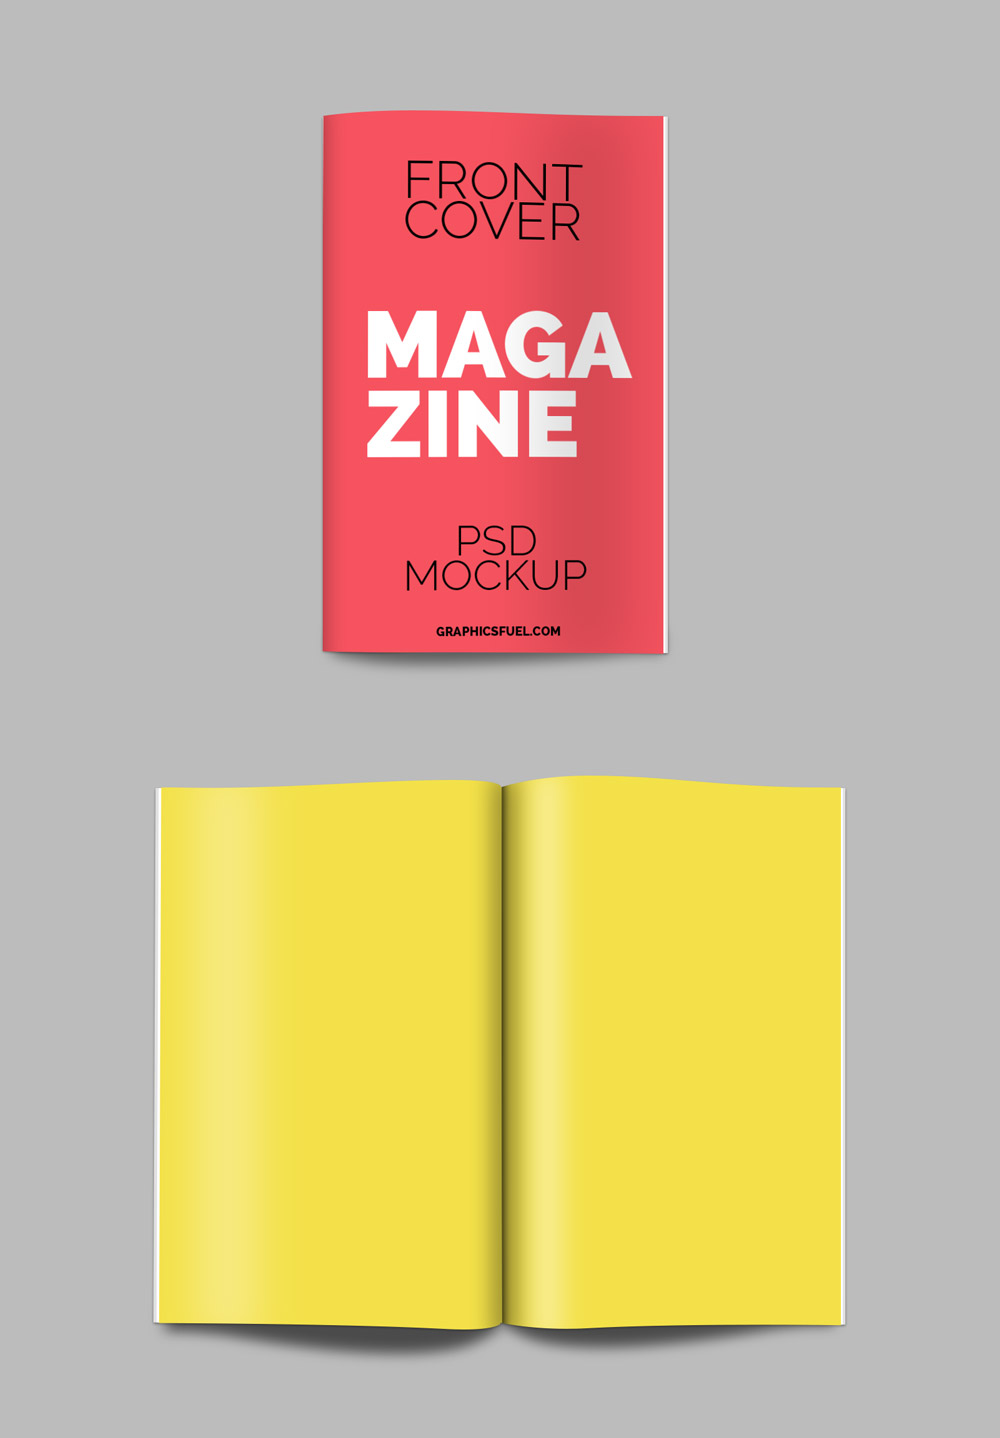 http://www.graphicsfuel.com/wp-content/uploads/2014/12/open-book-mockup.jpg